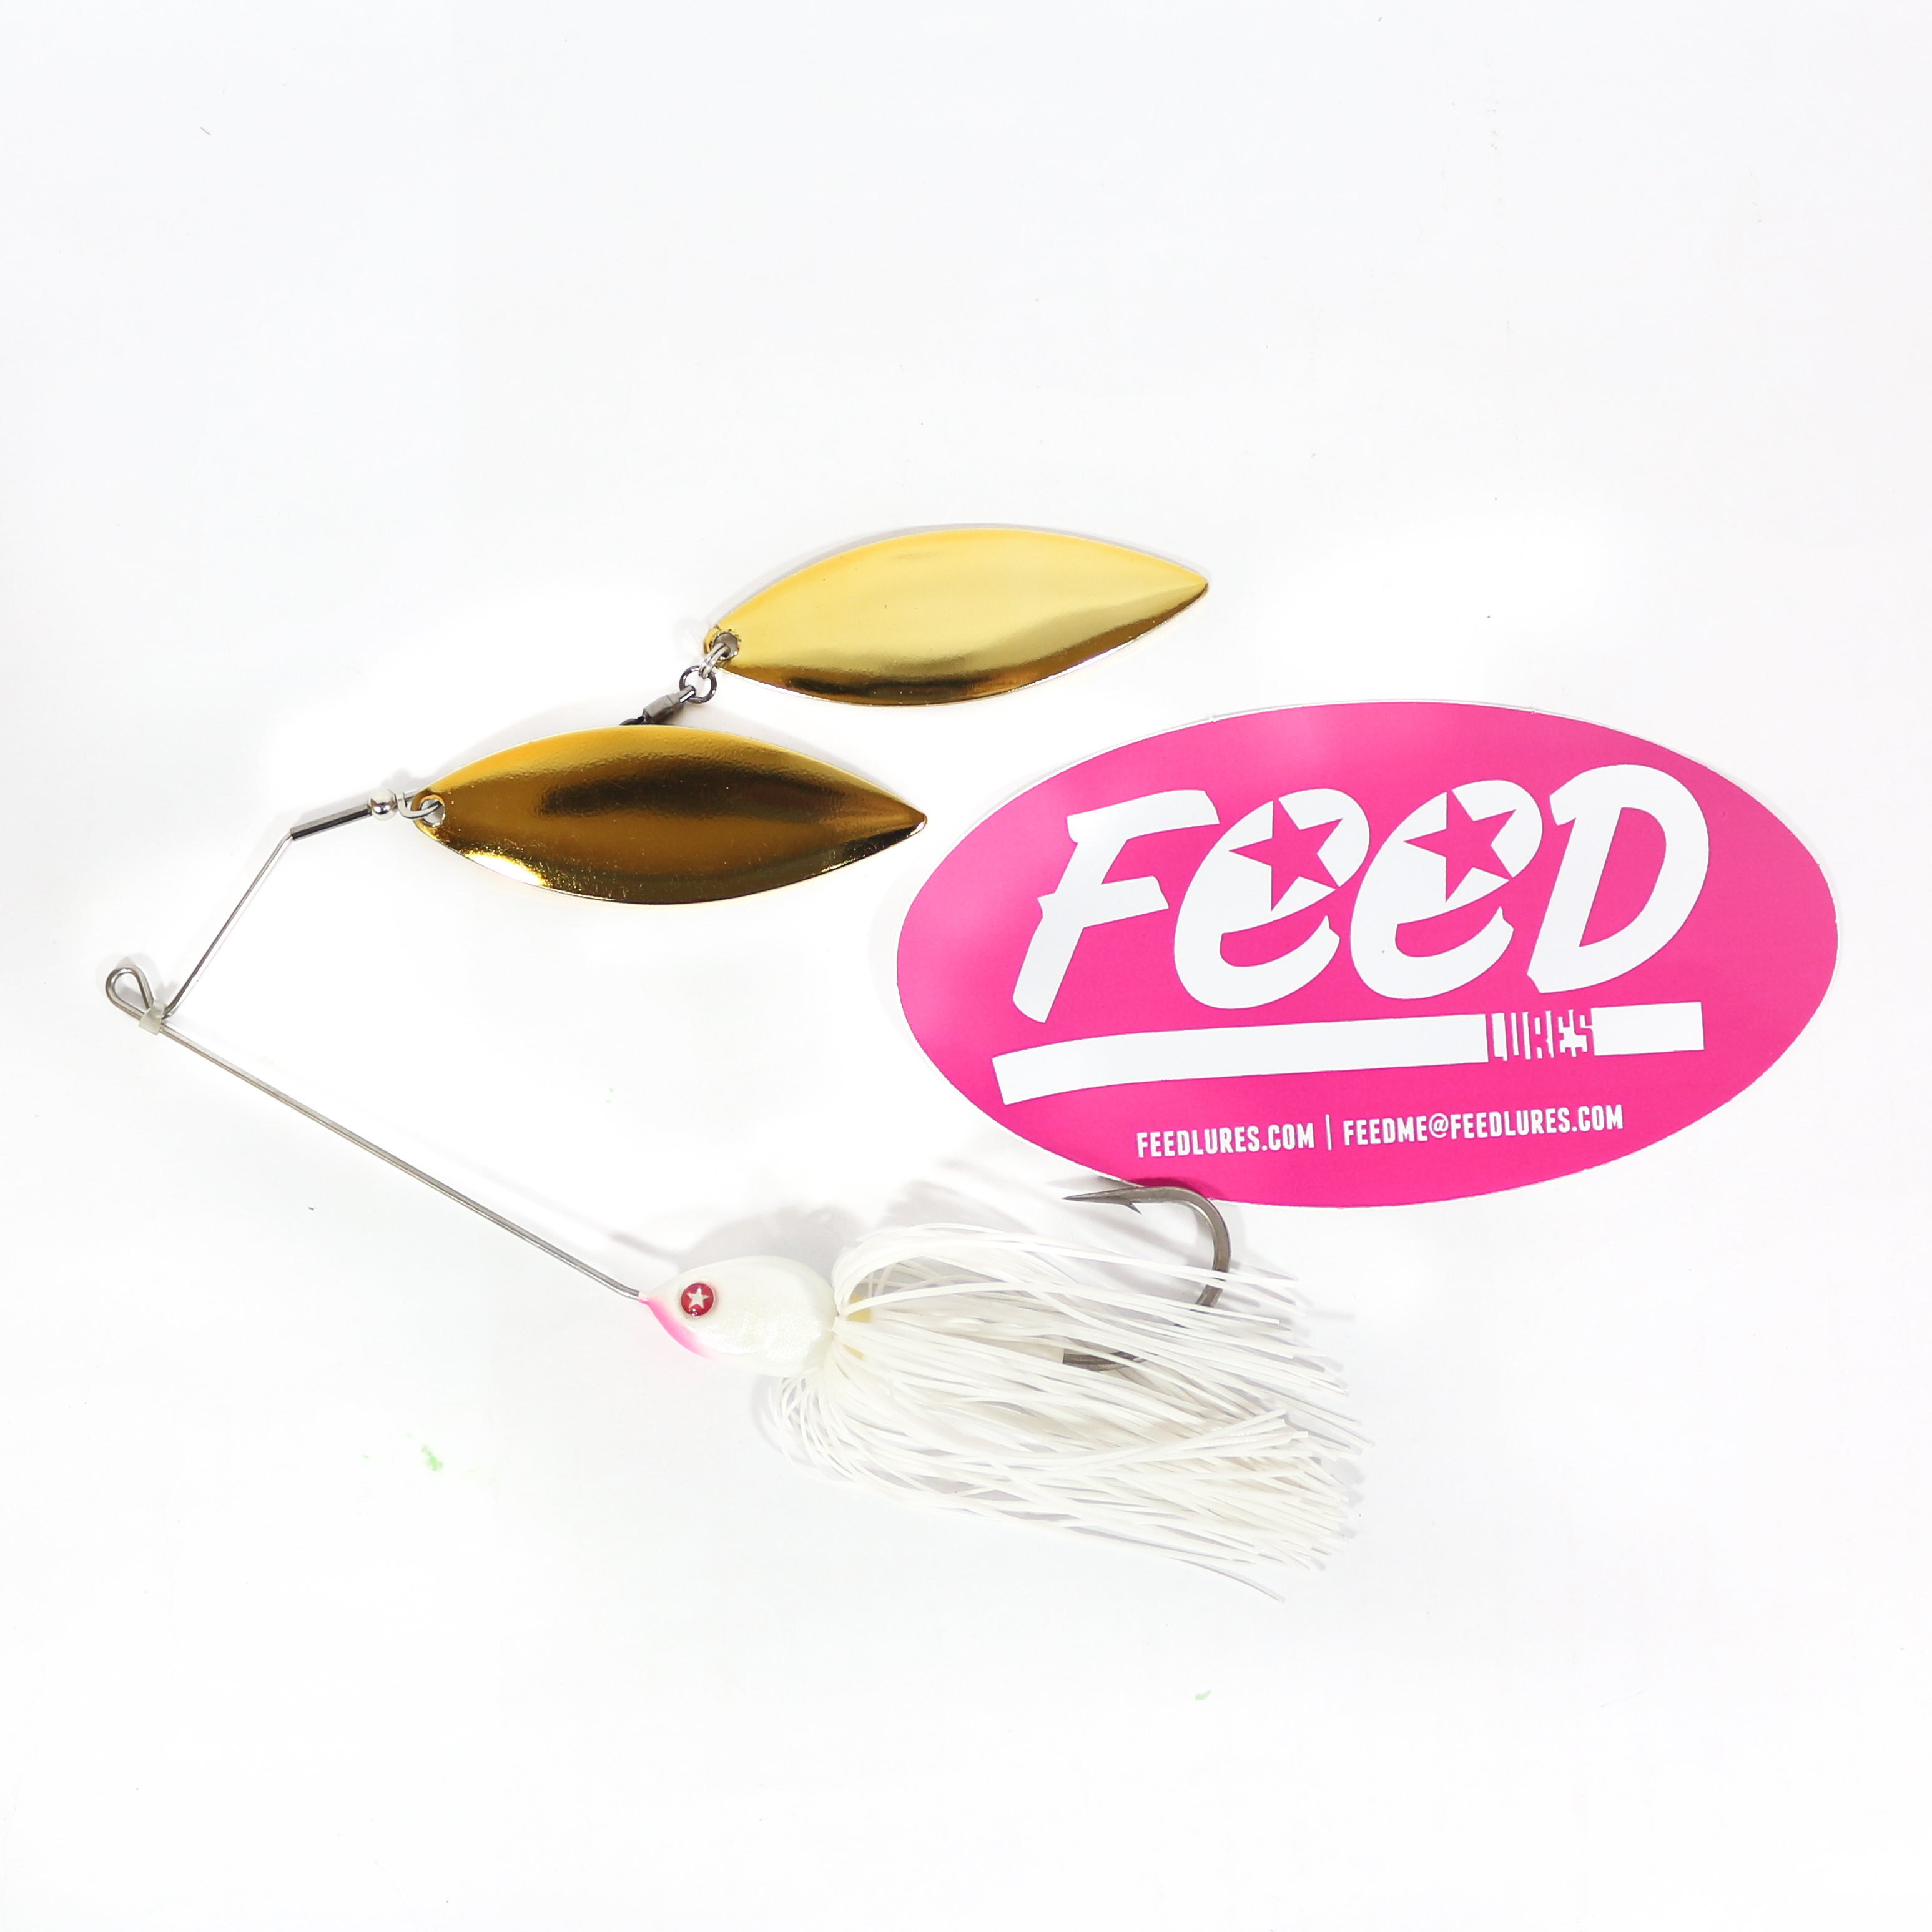 Feed Lures Blade 32 Spinnerbait 32 grams Lure B7 (2007)